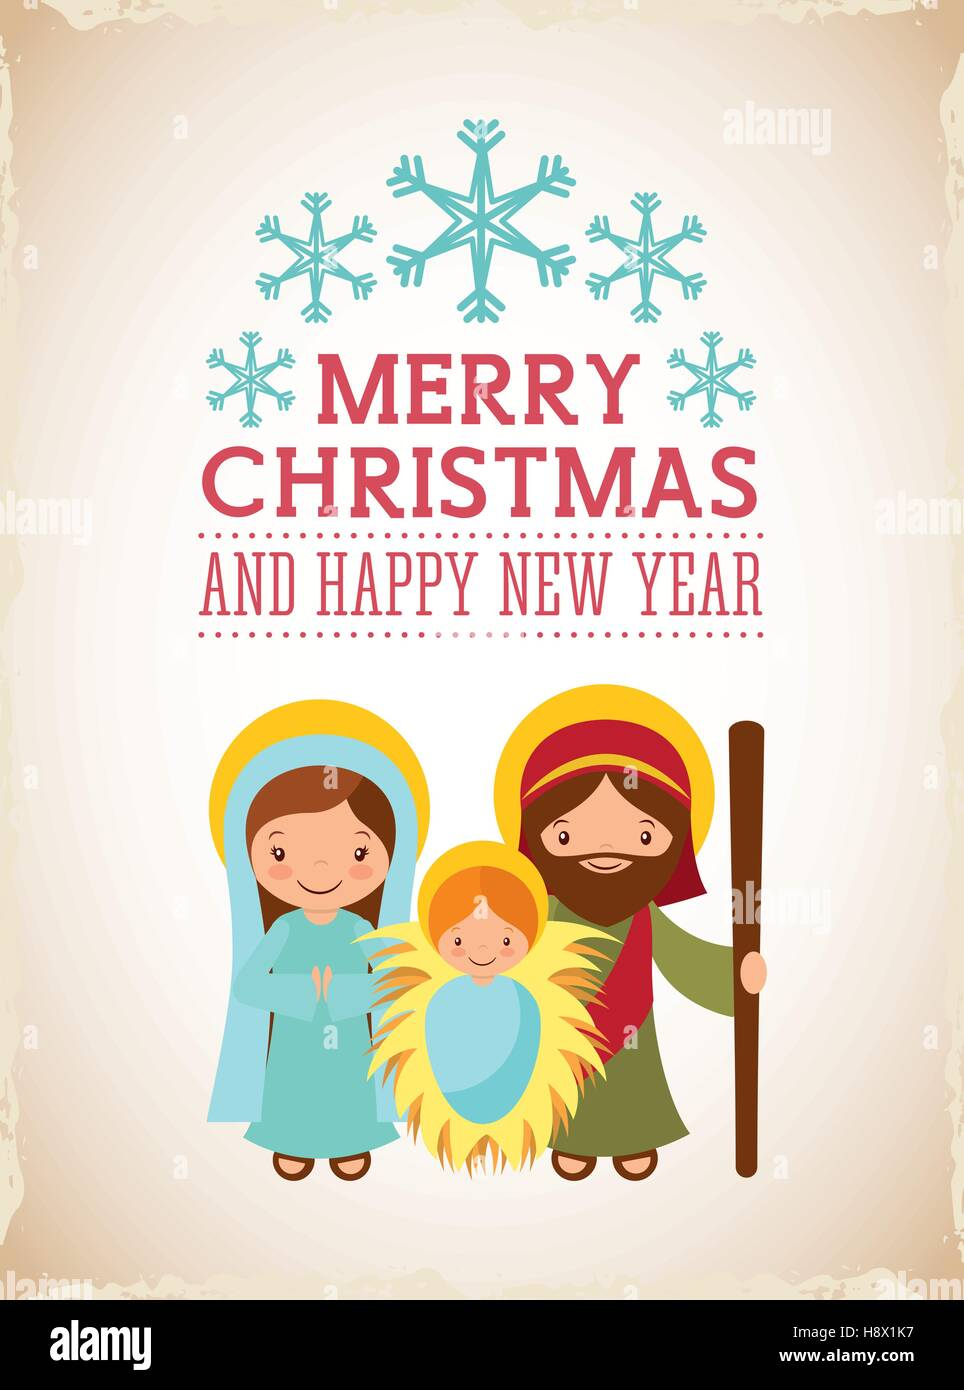 card of holy family manger scene merry christmas and happy new year colorful design vector illustration